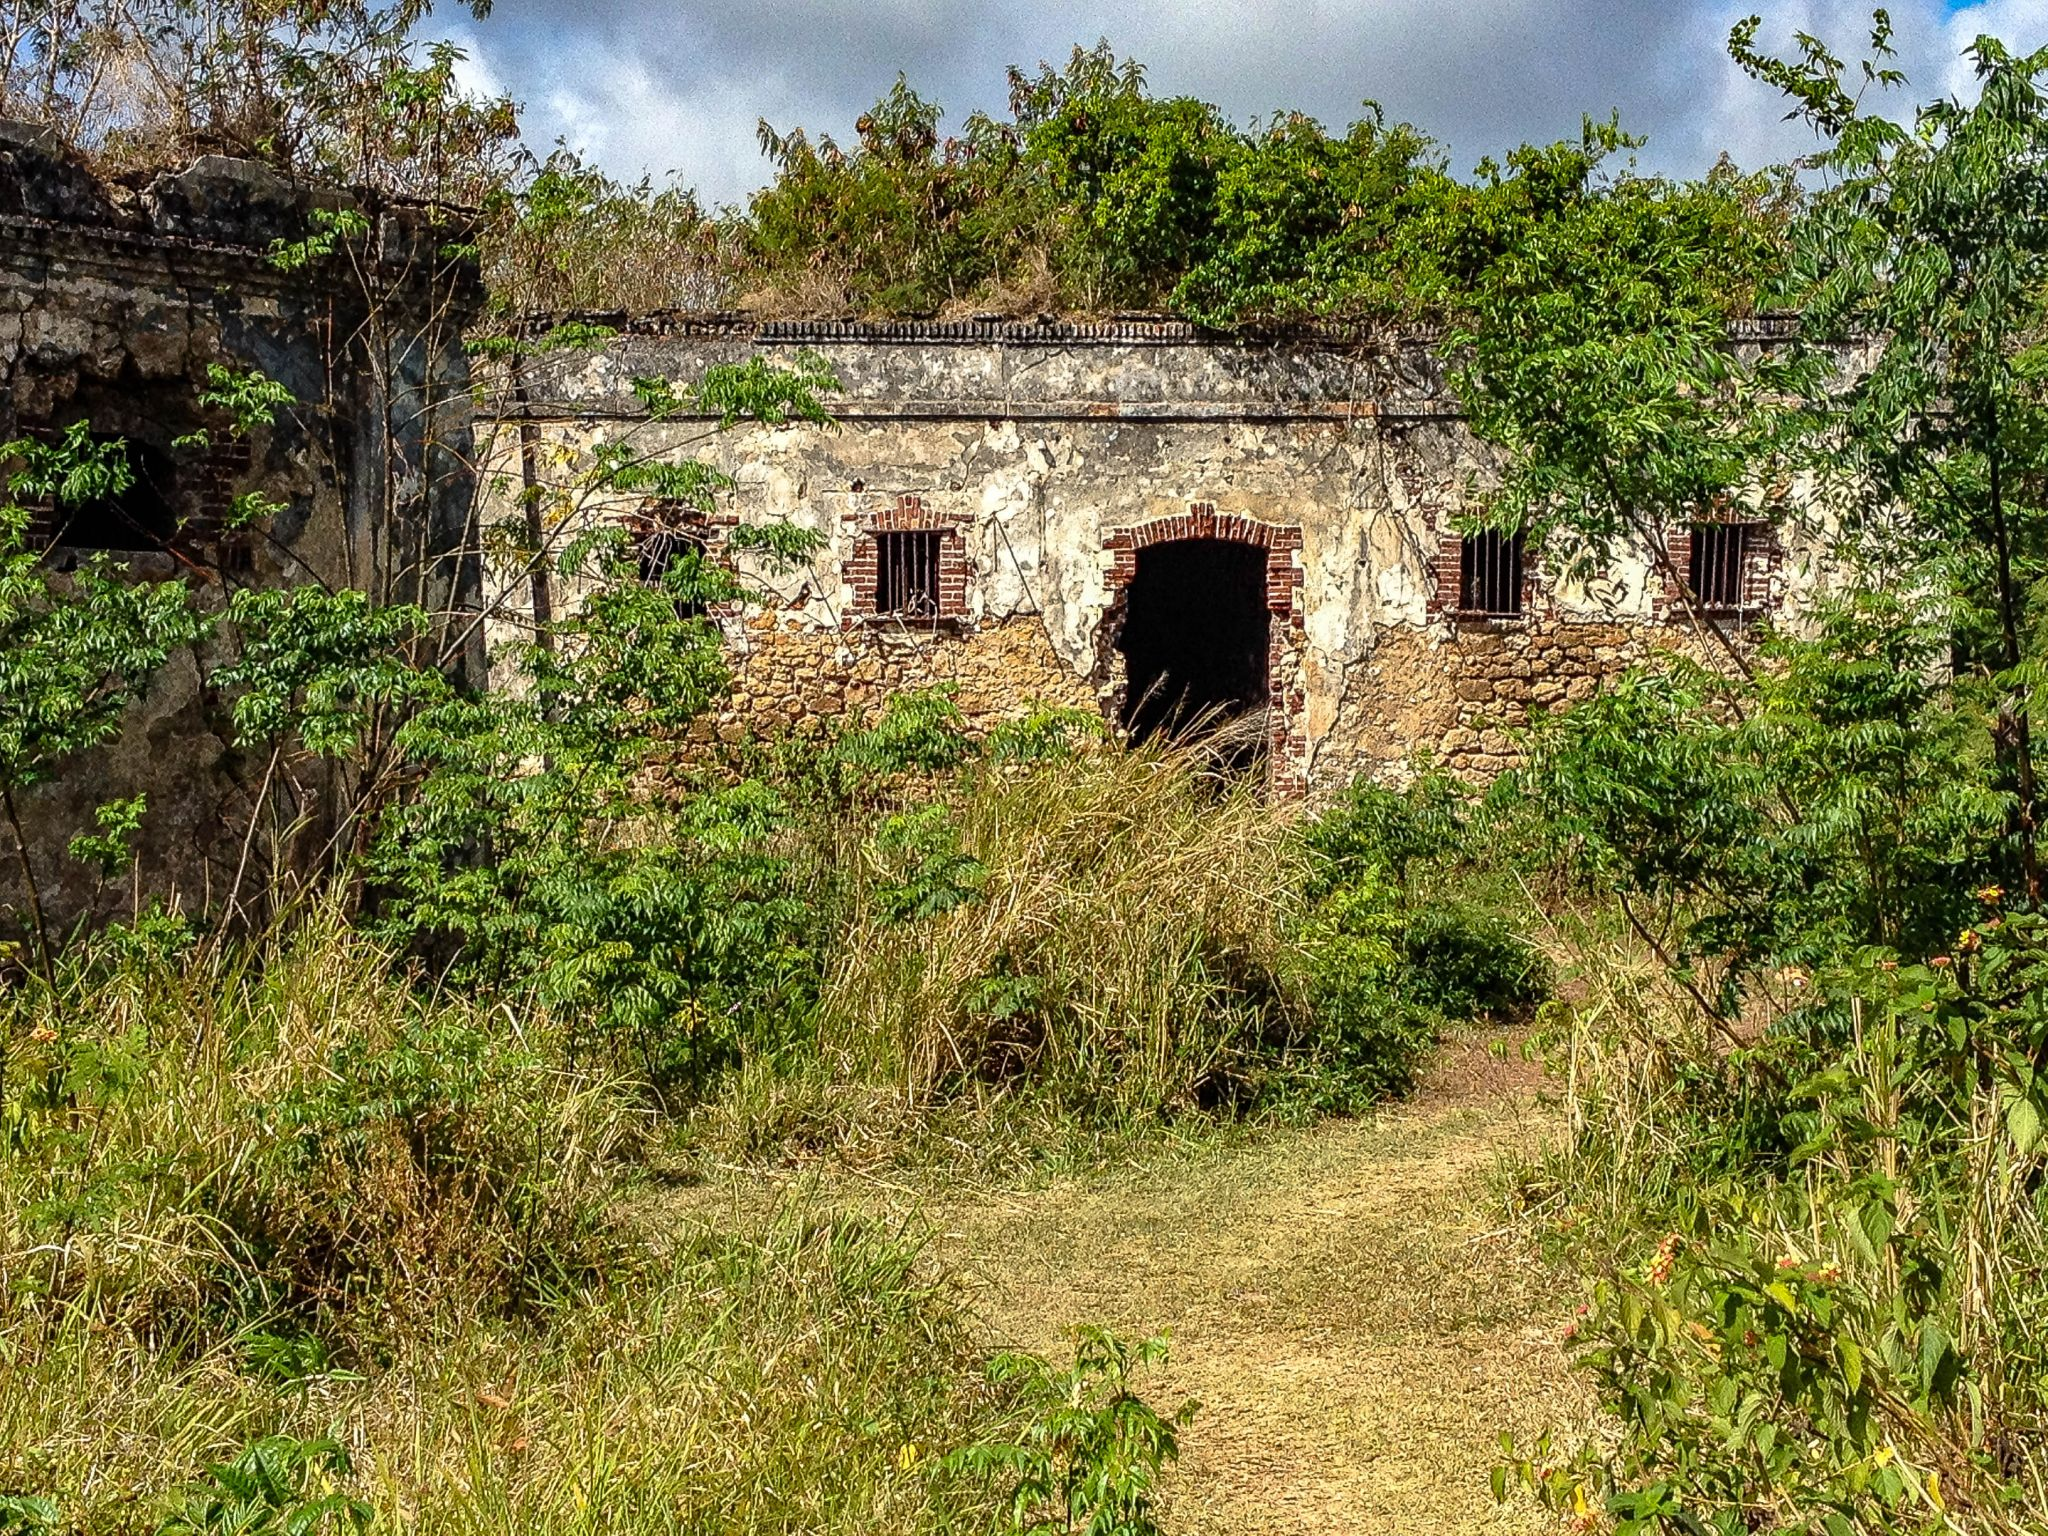 Isle of Pines Penal Colony Ruins, New Caledonia